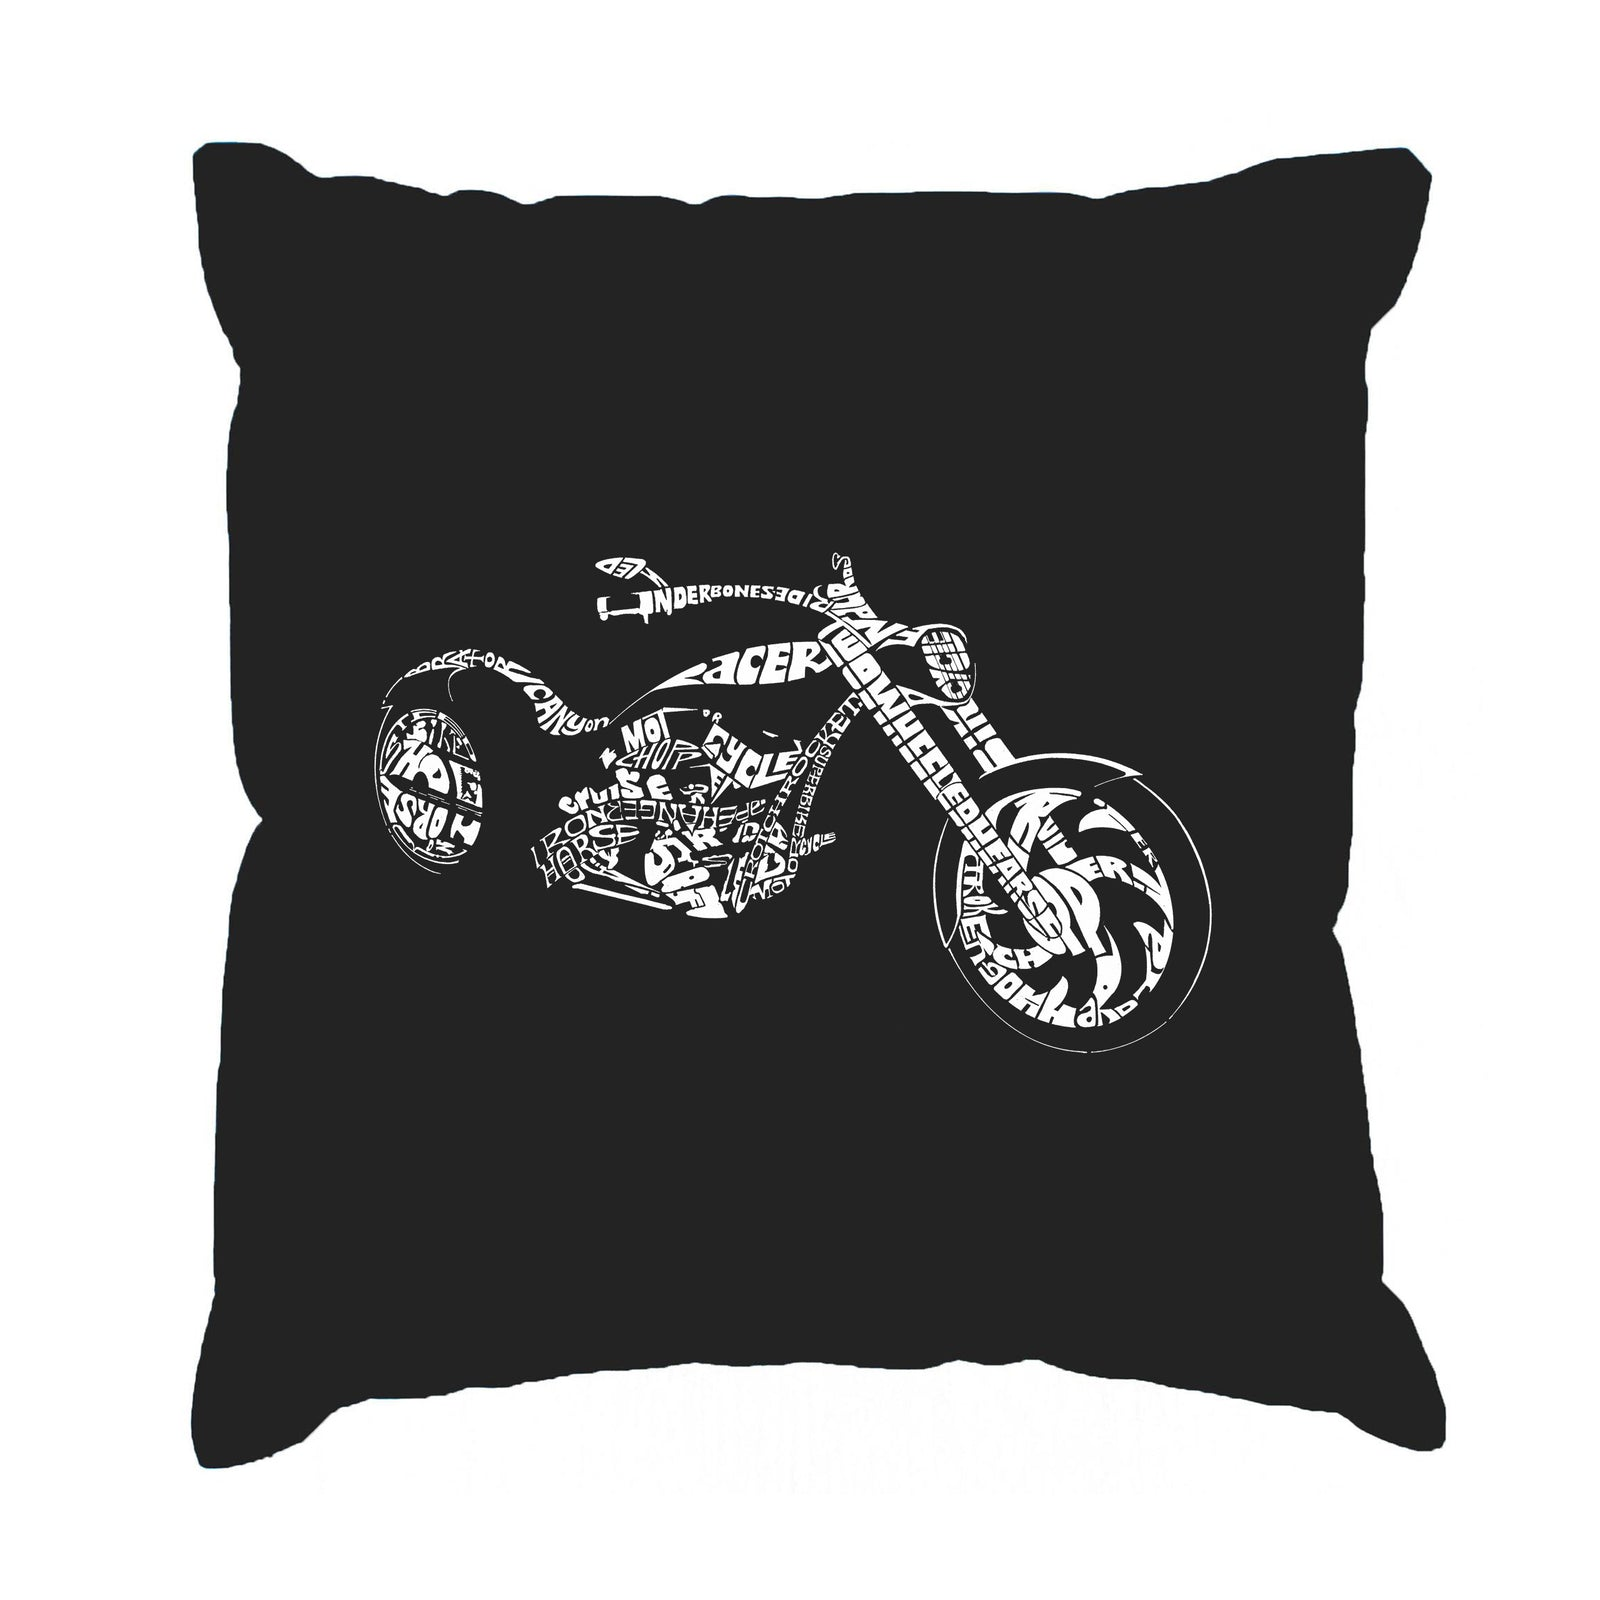 Throw Pillow Cover - MOTORCYCLE